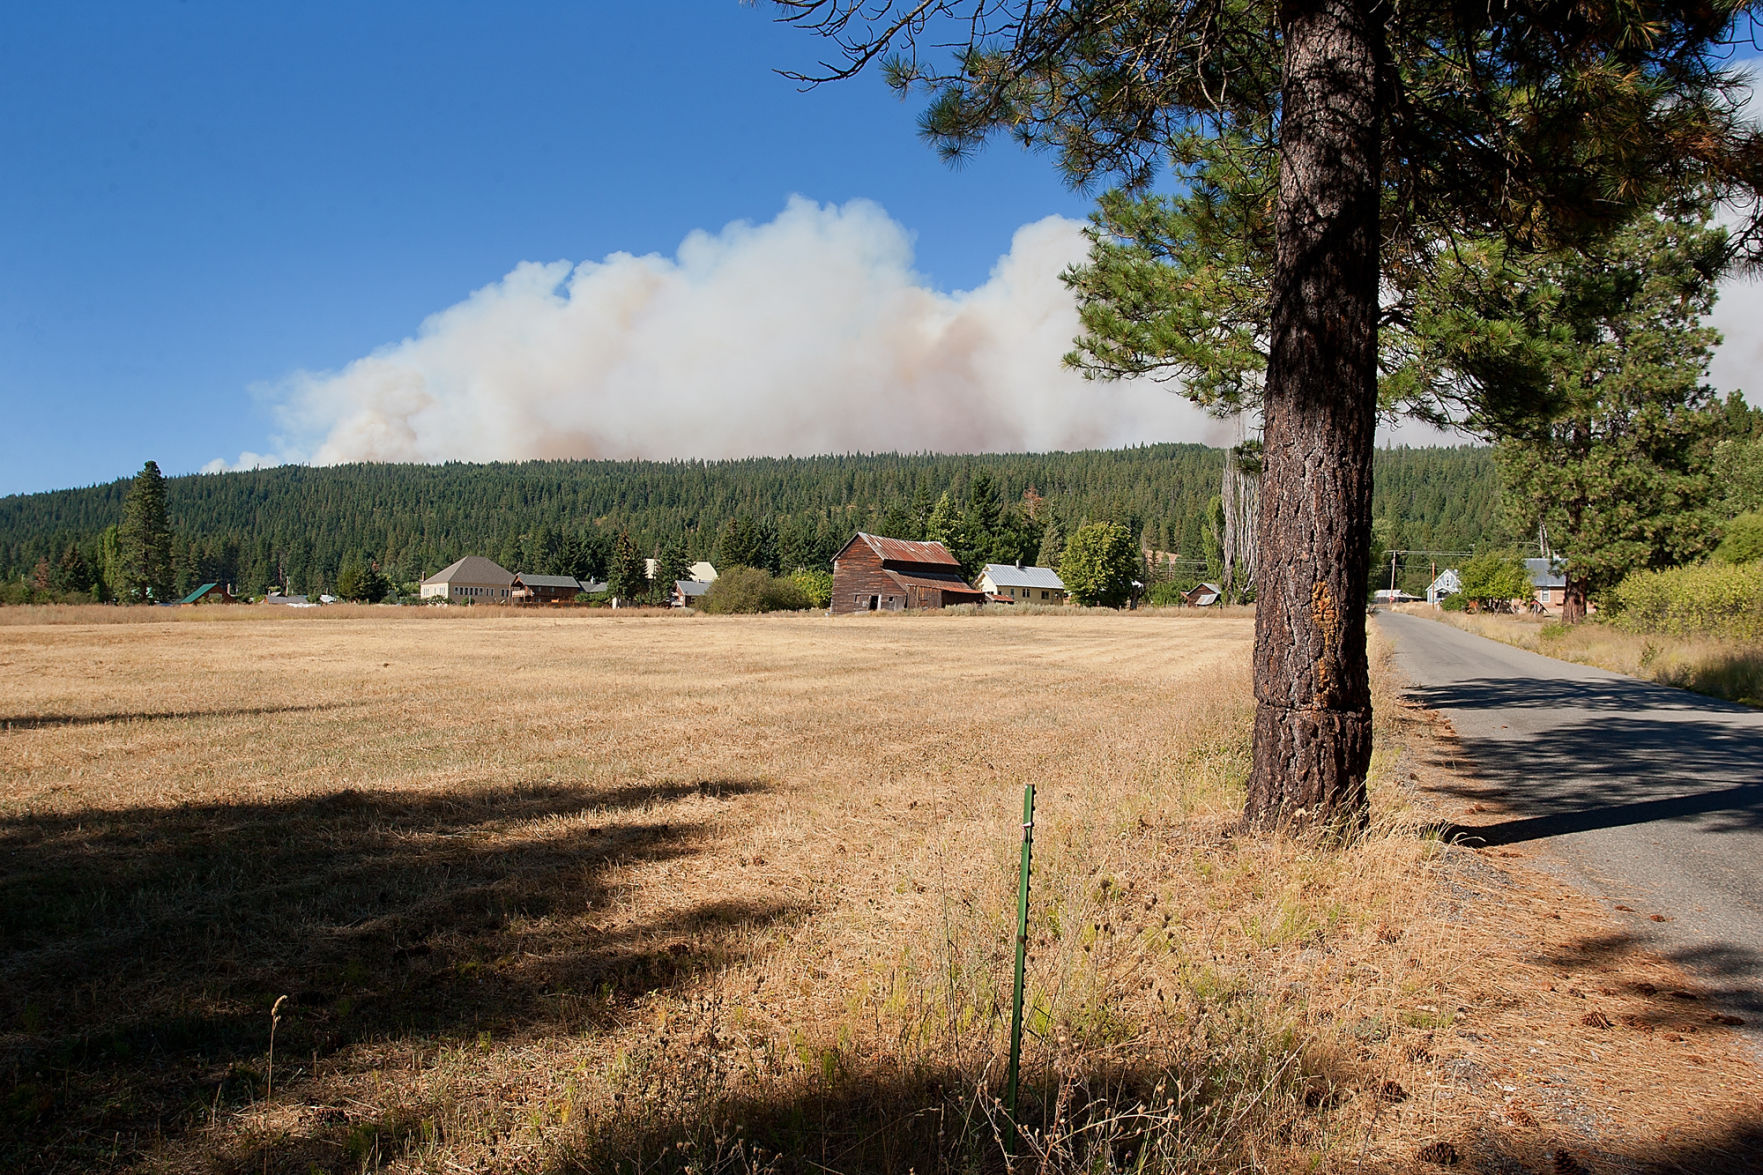 Governor Inslee declares State of Emergency due to fire danger